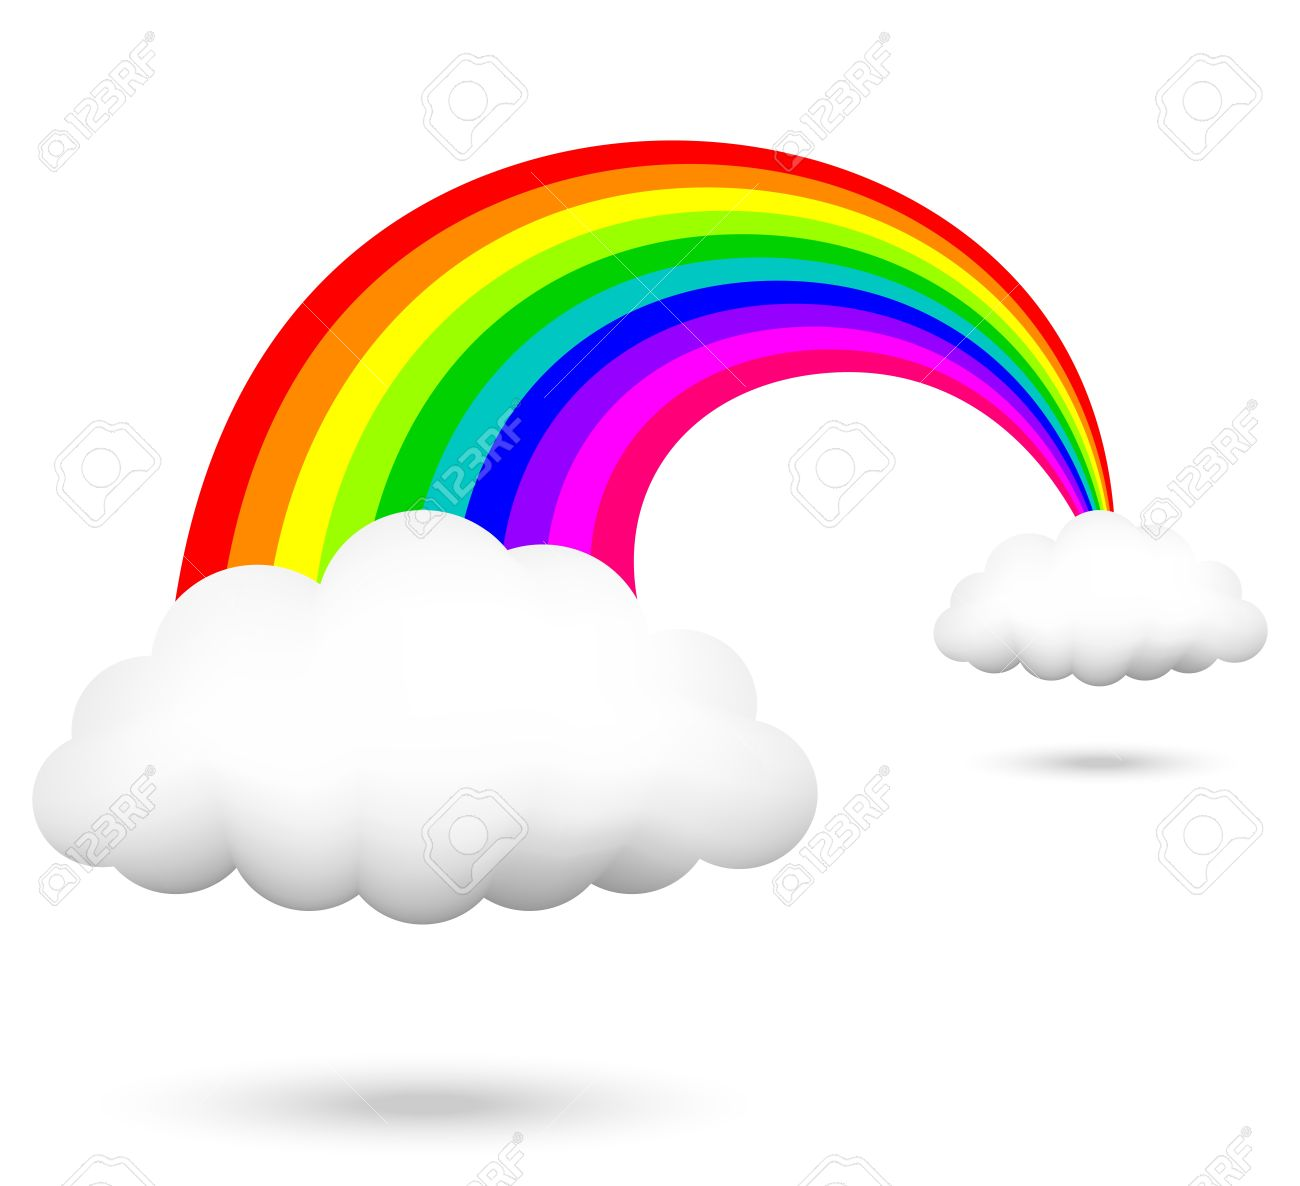 1300x1186 Vector Illustration Of Rainbow And Clouds Royalty Free Cliparts